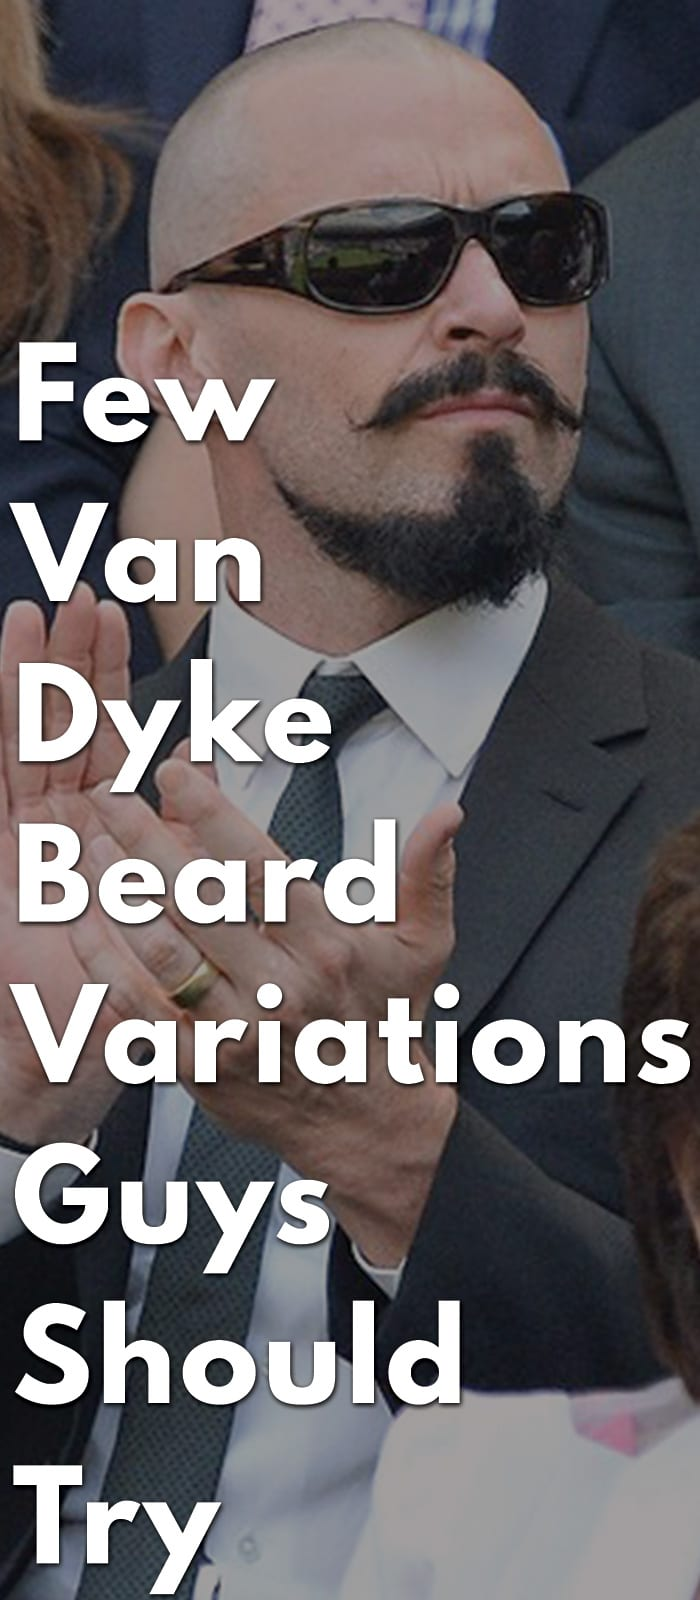 Few-Van-Dyke-Beard-Variations-Guys-Should-Try.